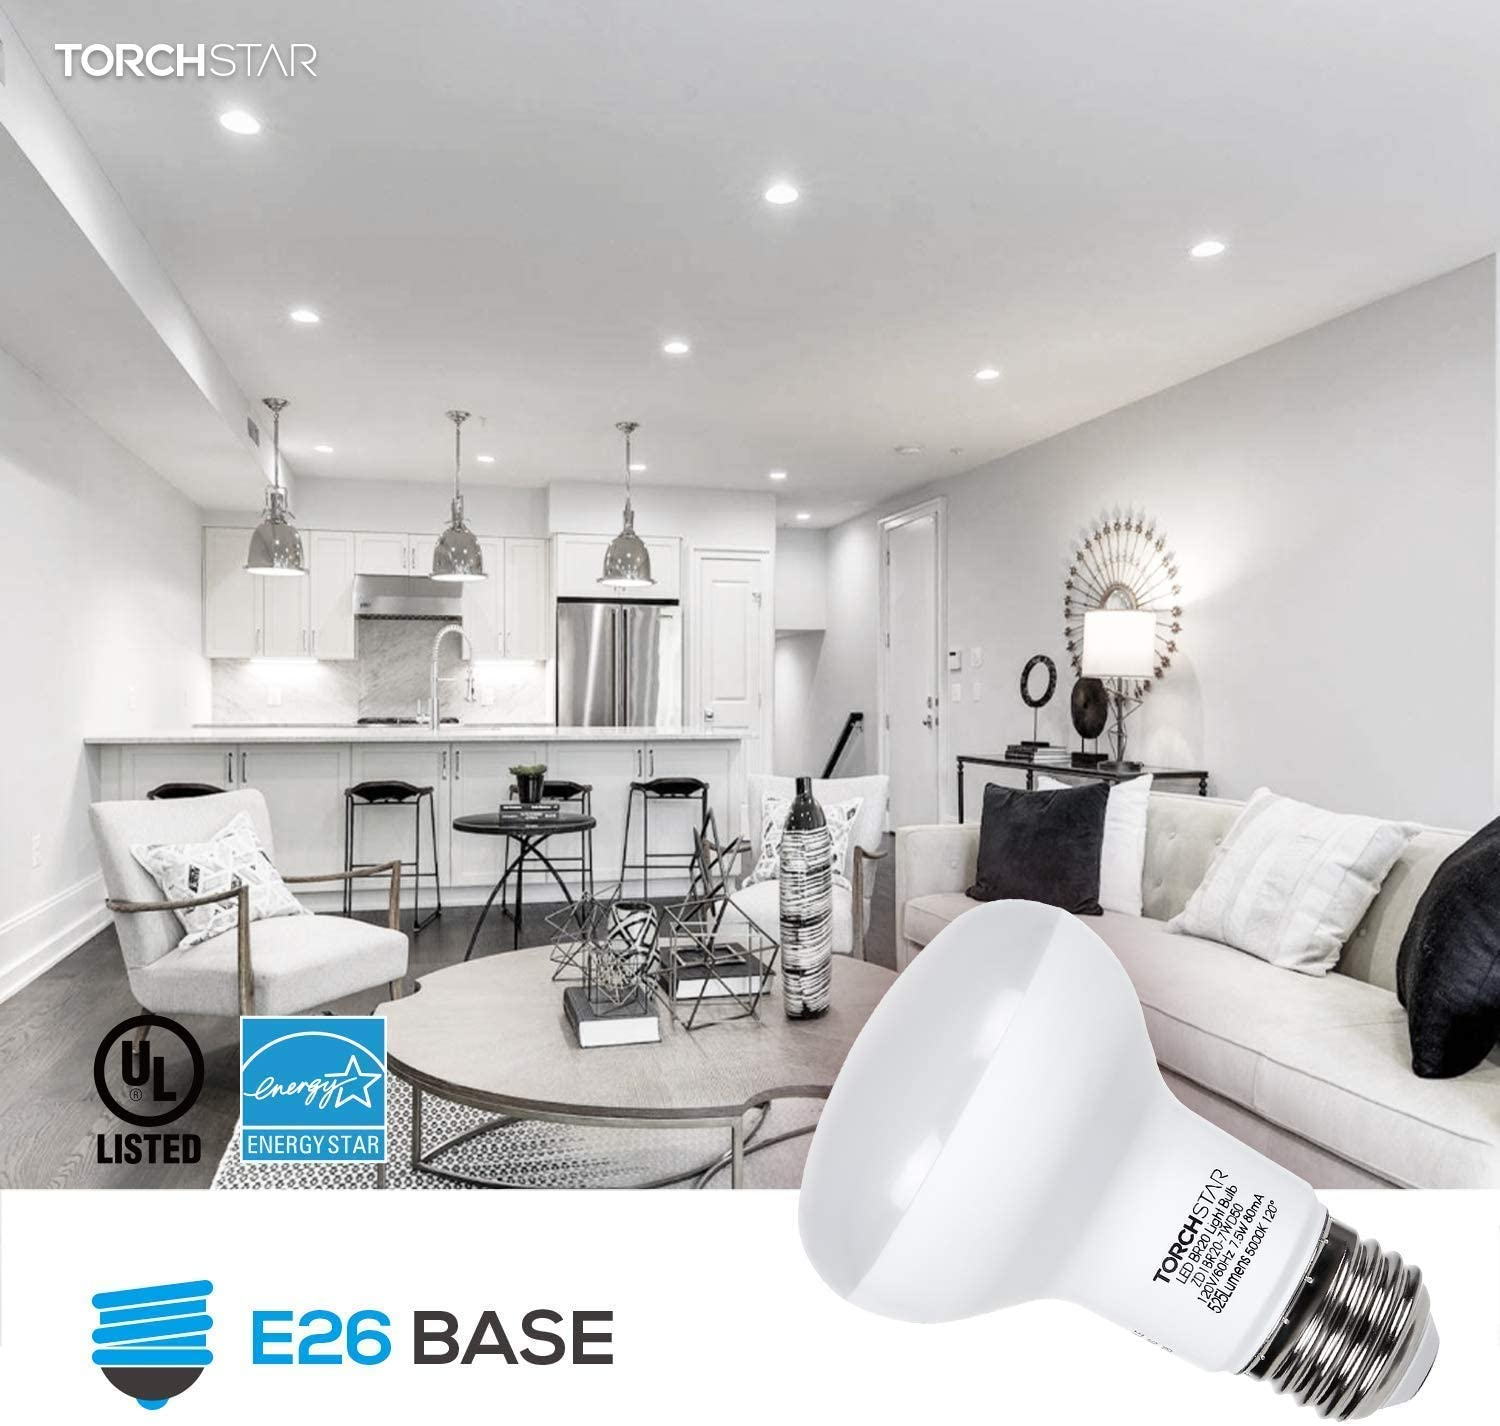 E26 Base White /& 6-Pack 9.5W Dimmable A19 LED Light Bulb Interchangeable Base Or Clamp 5000K Daylight Classic Architect Table Lamp TORCHSTAR Metal Swing Arm Desk Lamp Bundle A19 LED Light Bulb